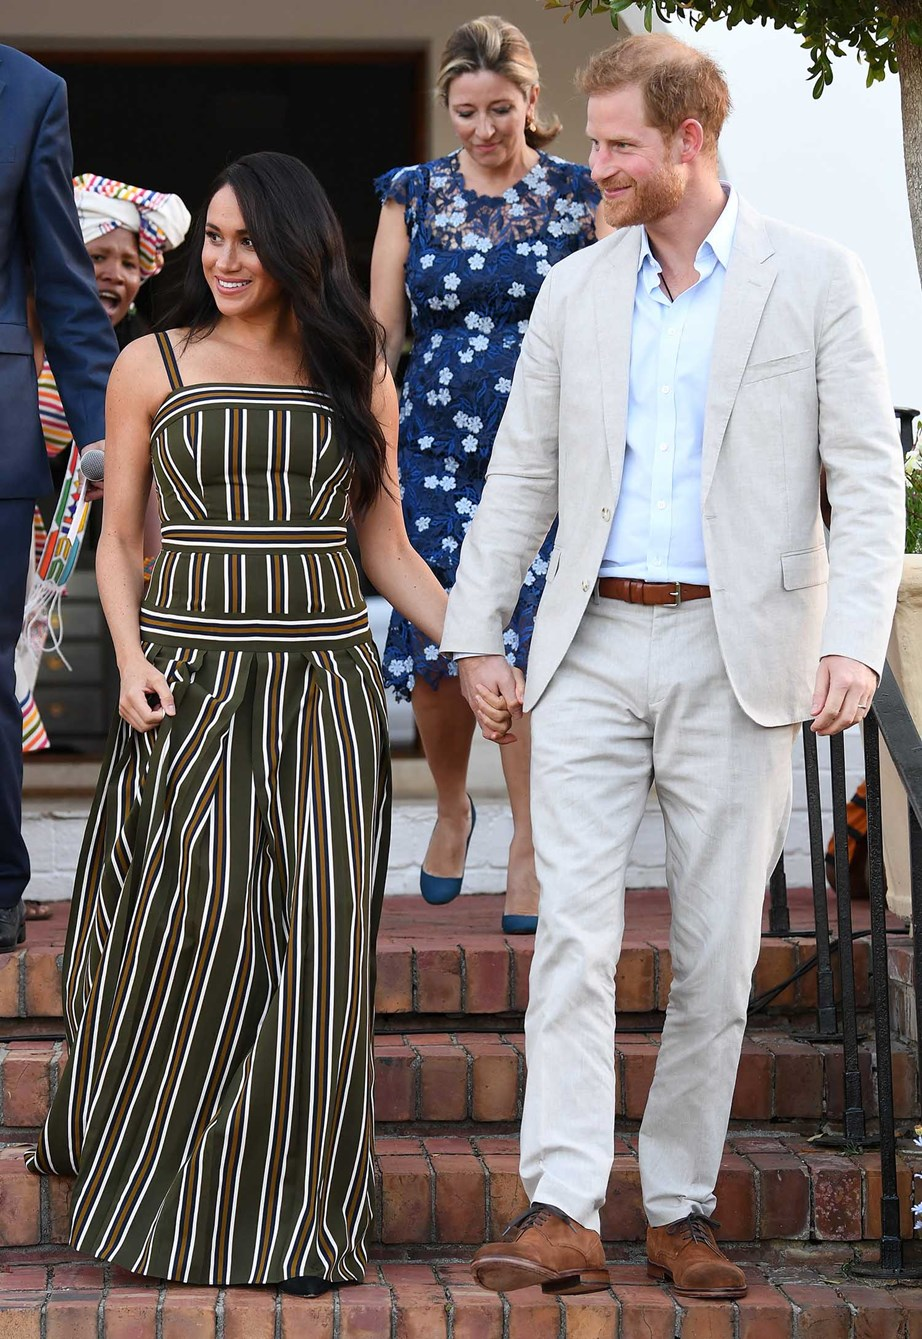 Harry's been visiting Botswana, Malawi and Angola over the past few days and Meghan can't wait to see him when he arrives back in South Africa. *(Image: Getty)*